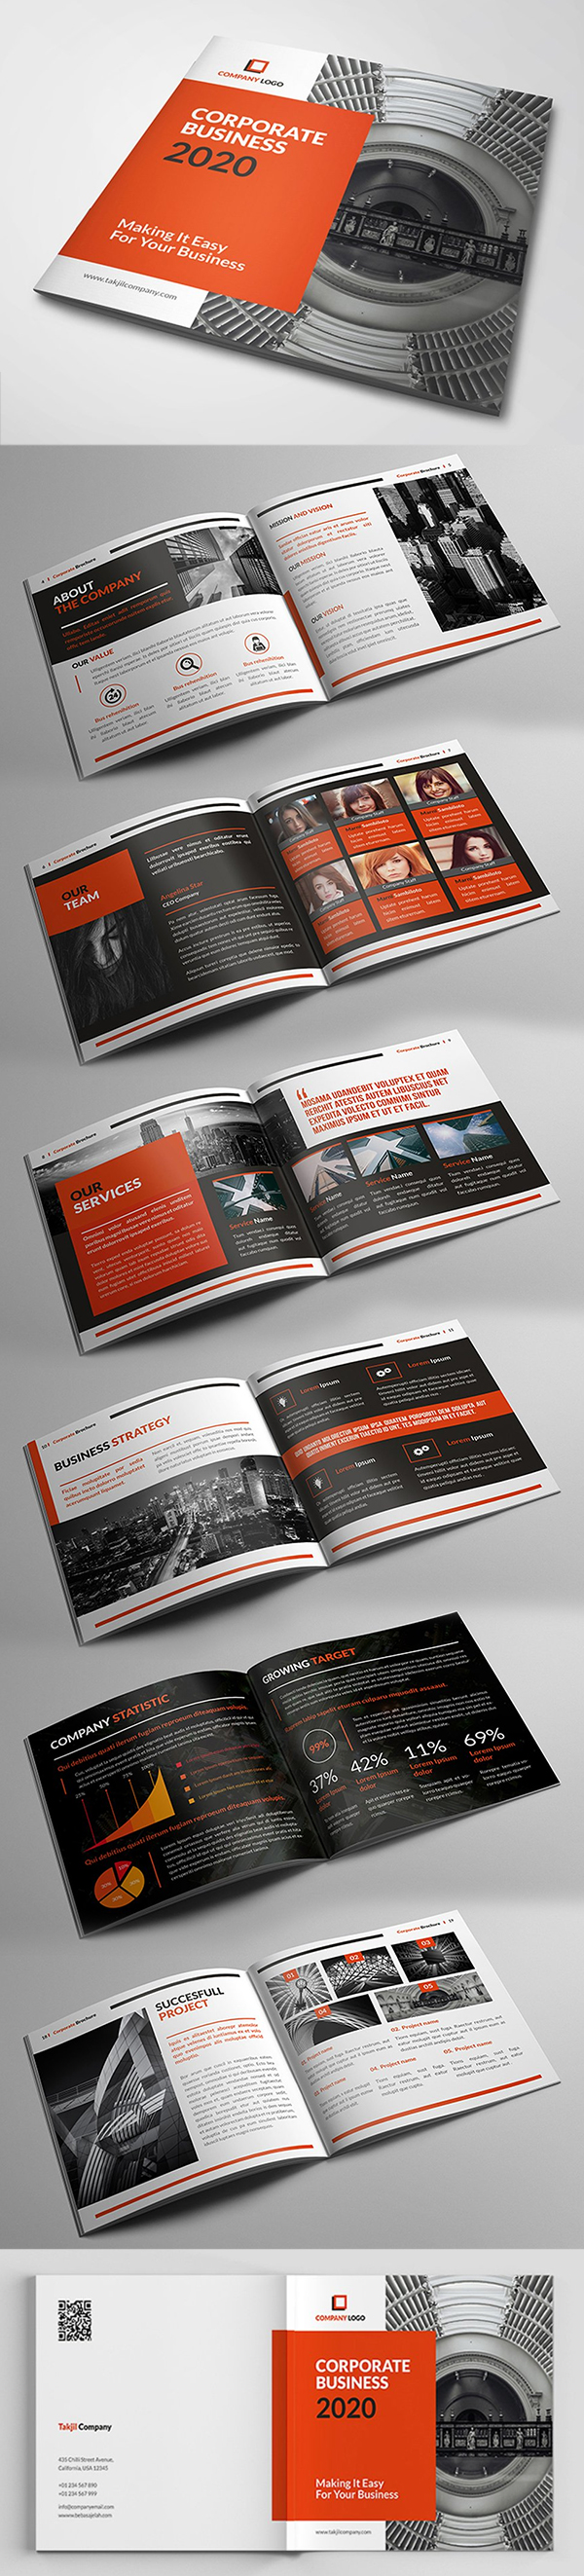 Square Corporate Brochure Template